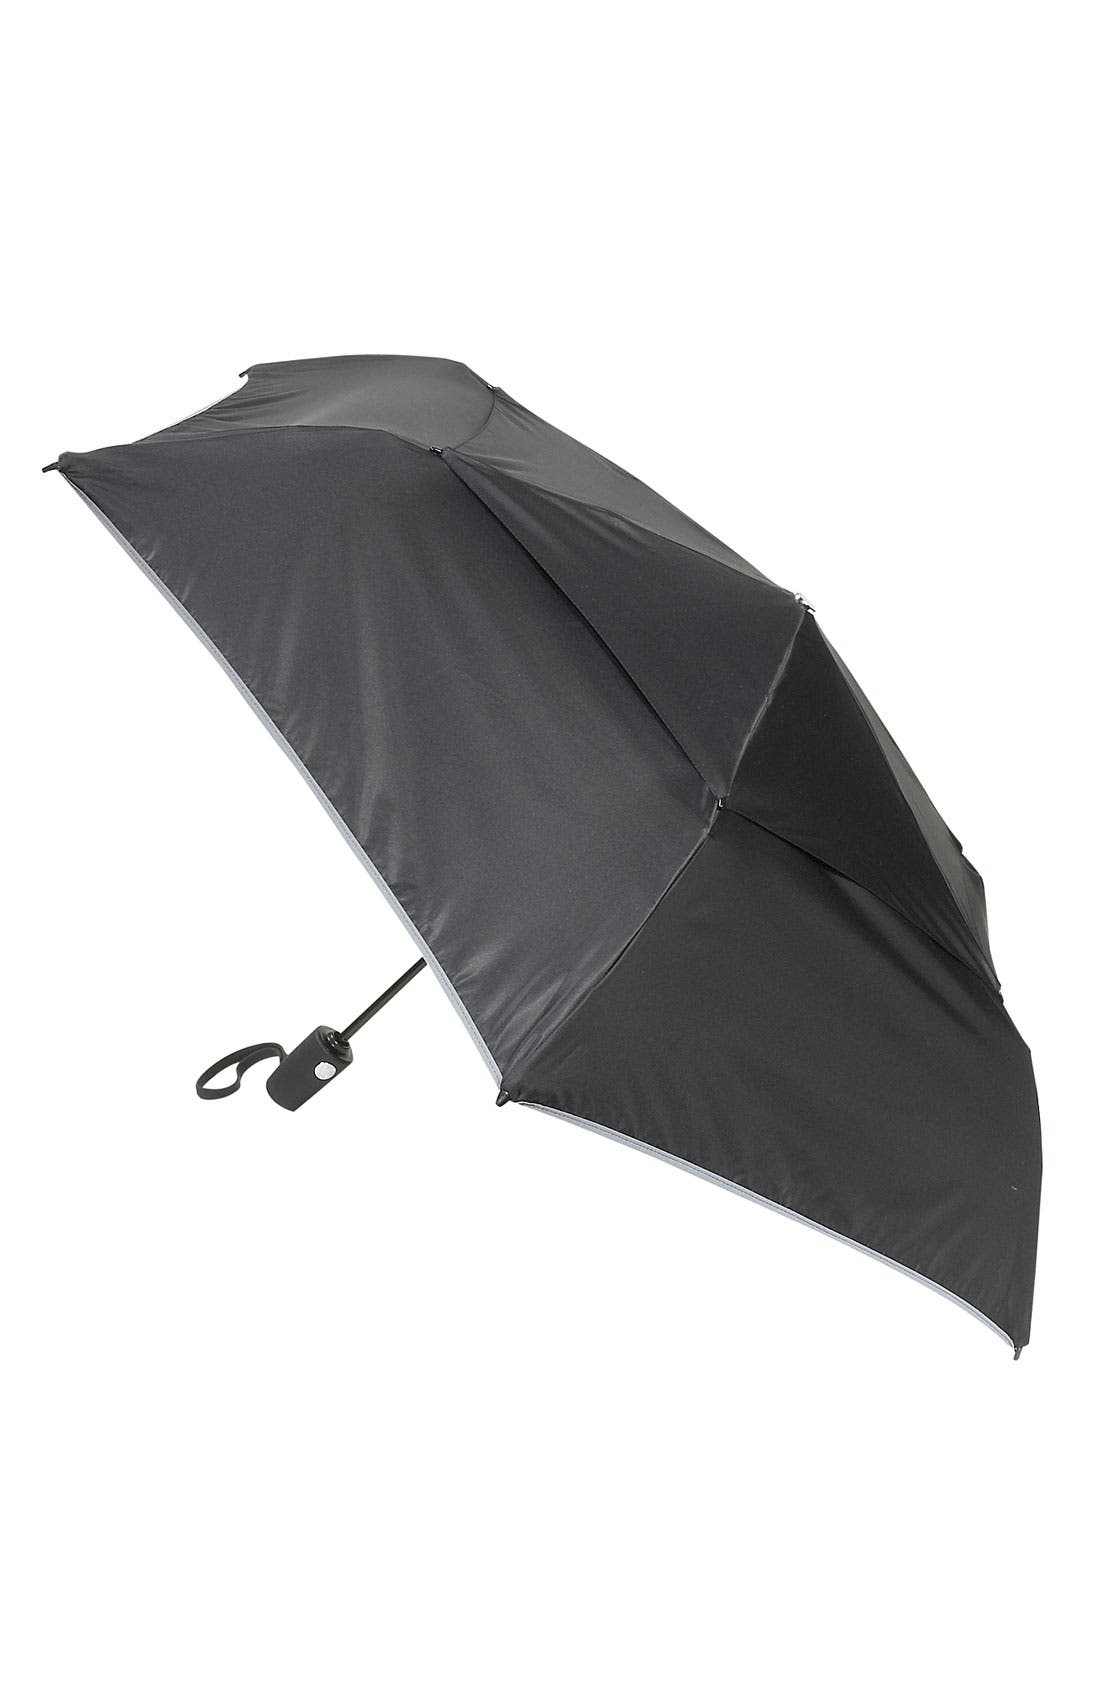 Main Image - Tumi Medium Auto Close Umbrella